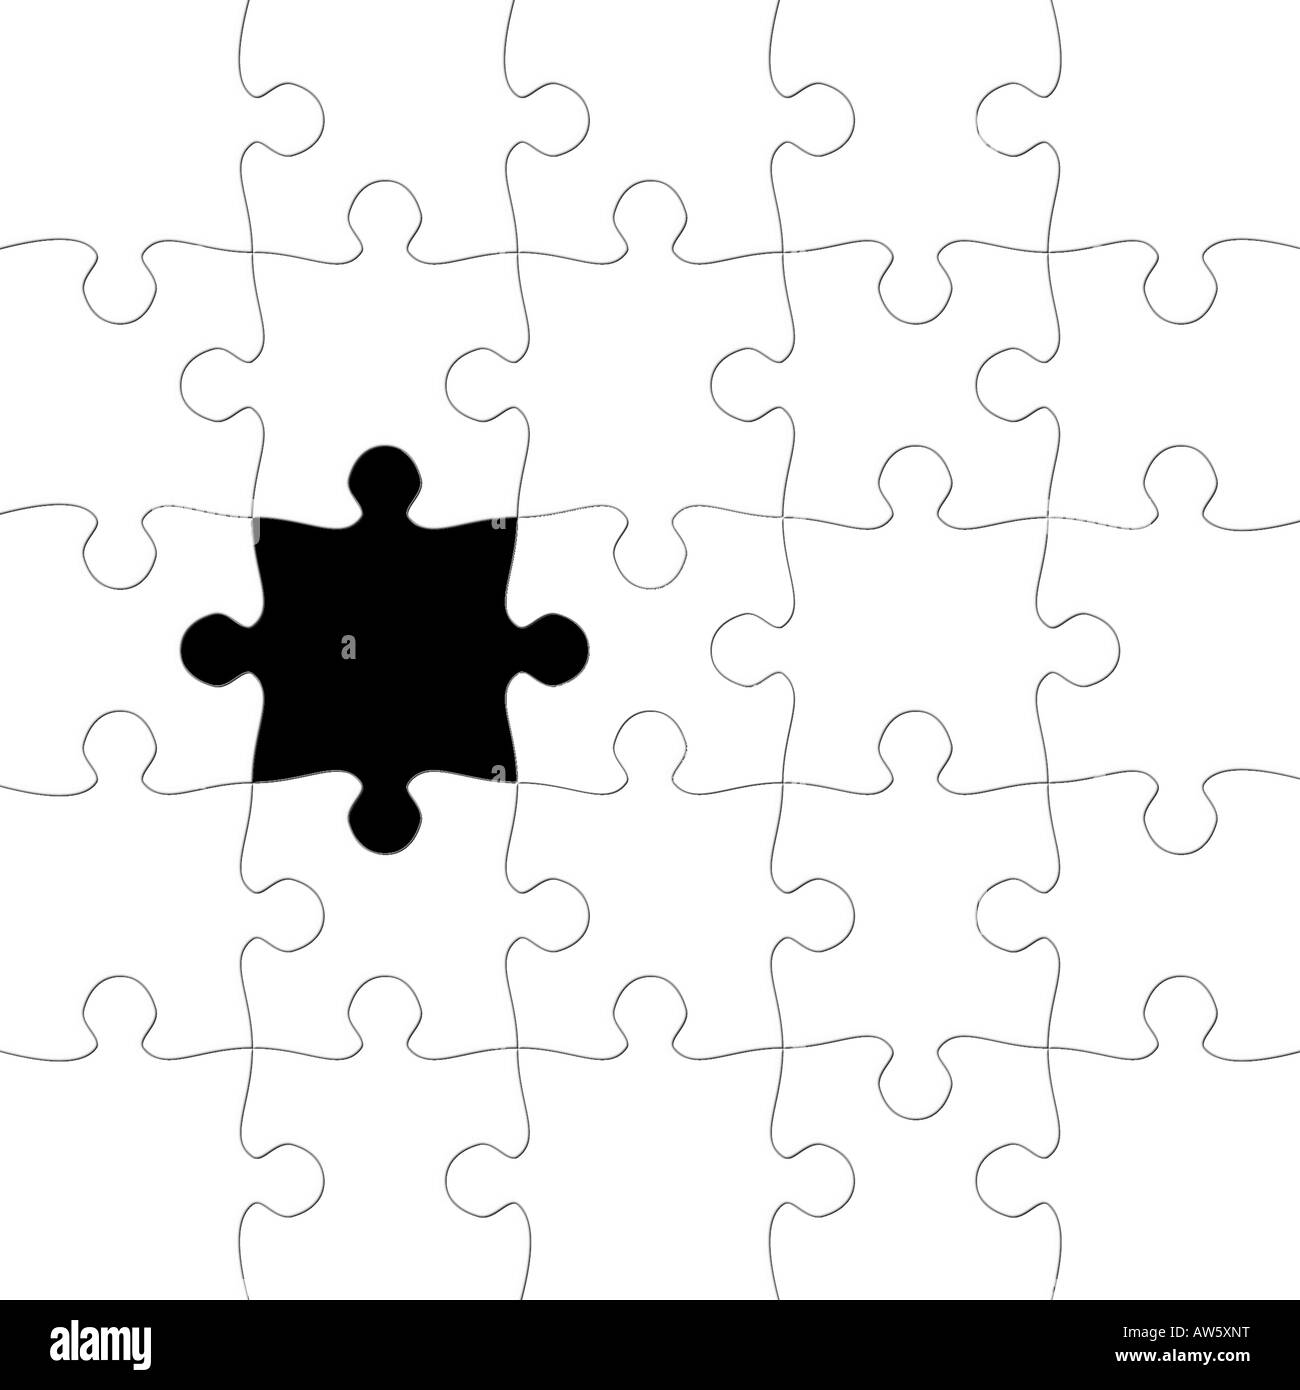 Puzzle with missing piece in black - Stock Image